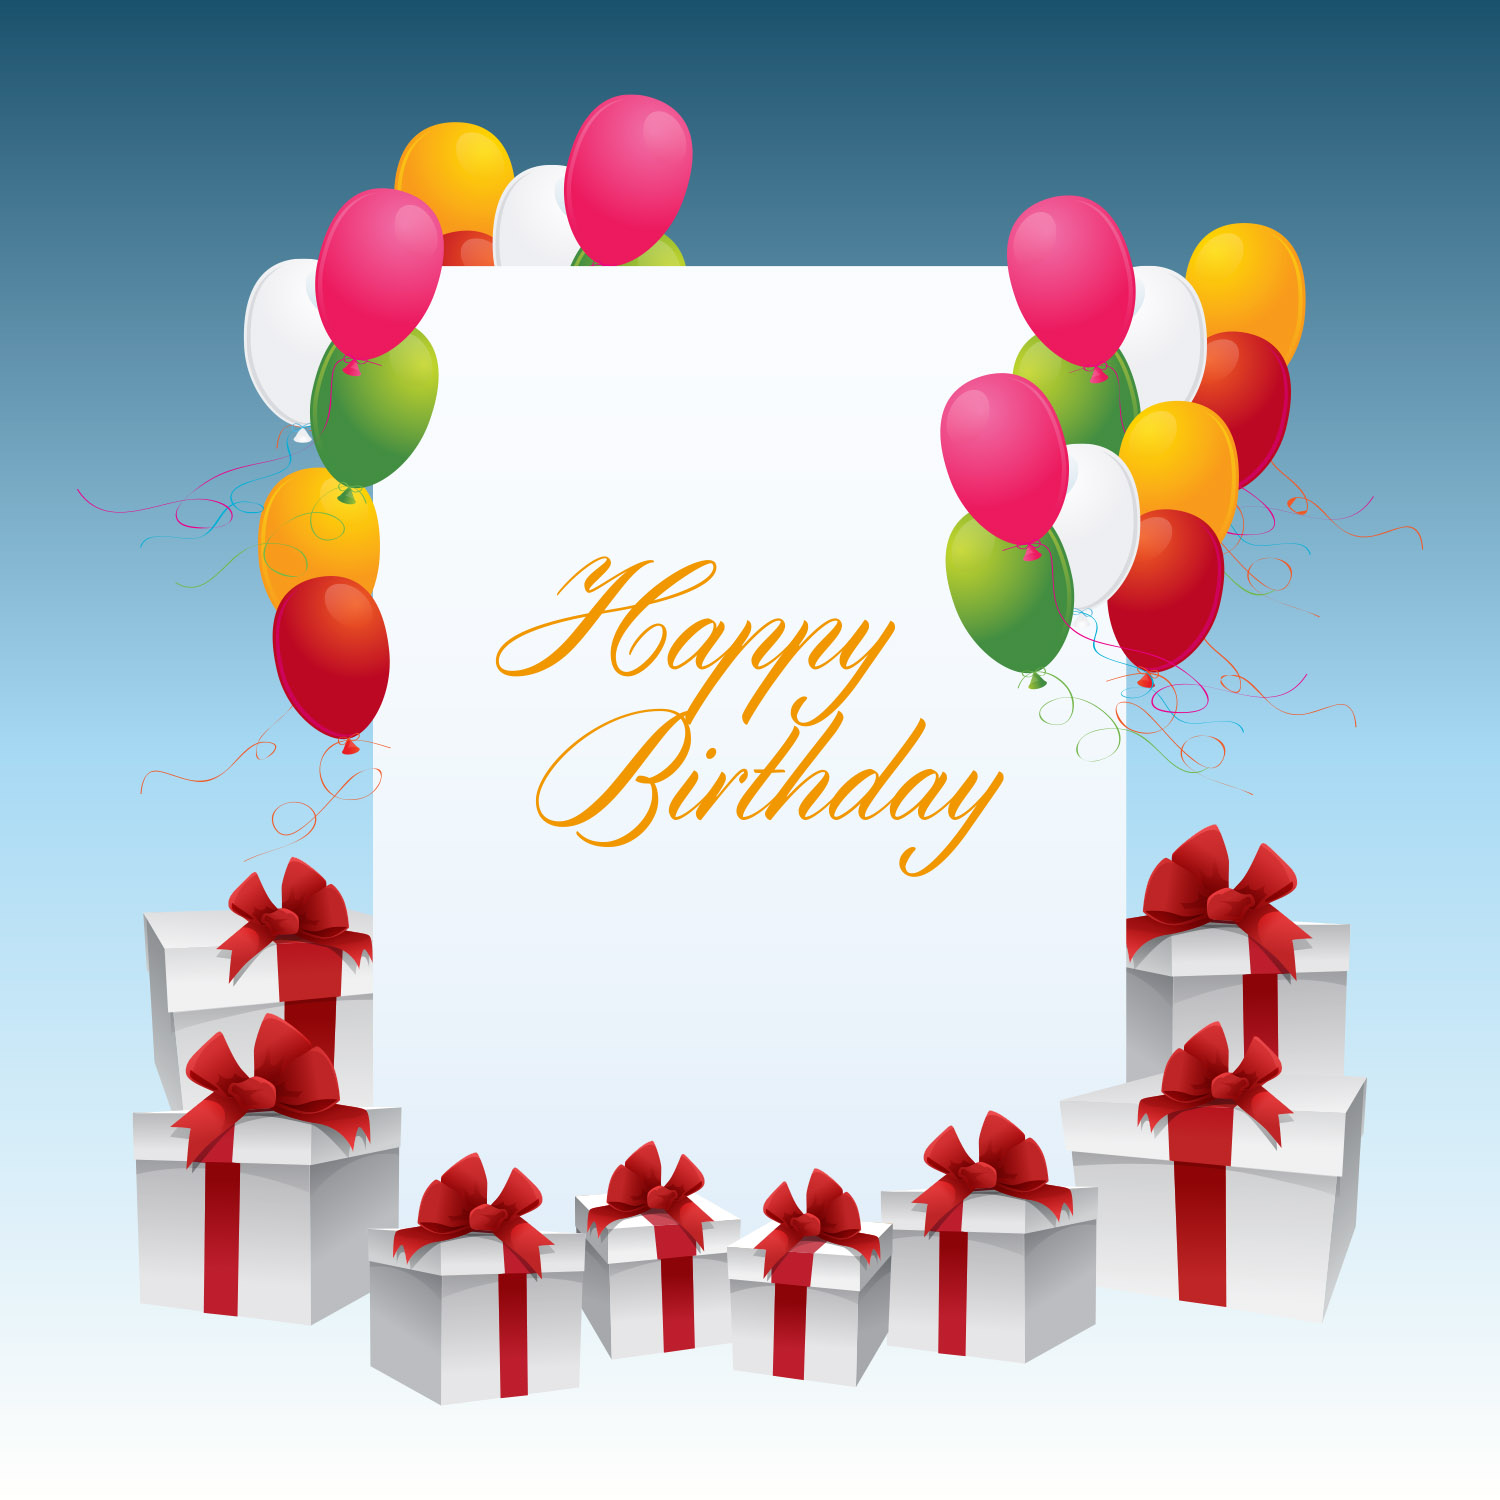 hd wallpaper happy birthday gifts ; Happy-Birthday-Images